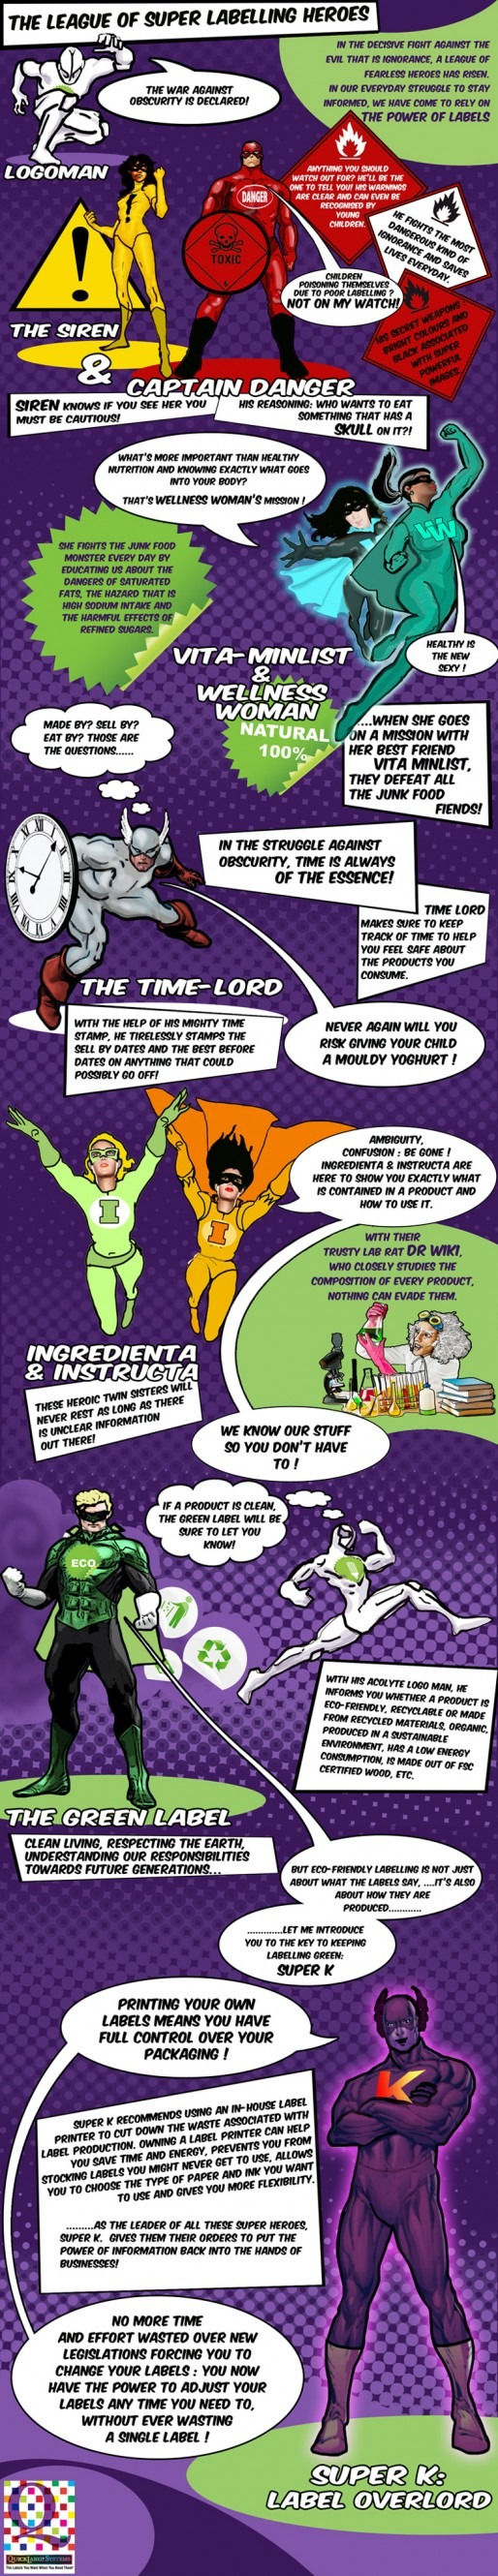 Infographic showing super heroes explaining labeling